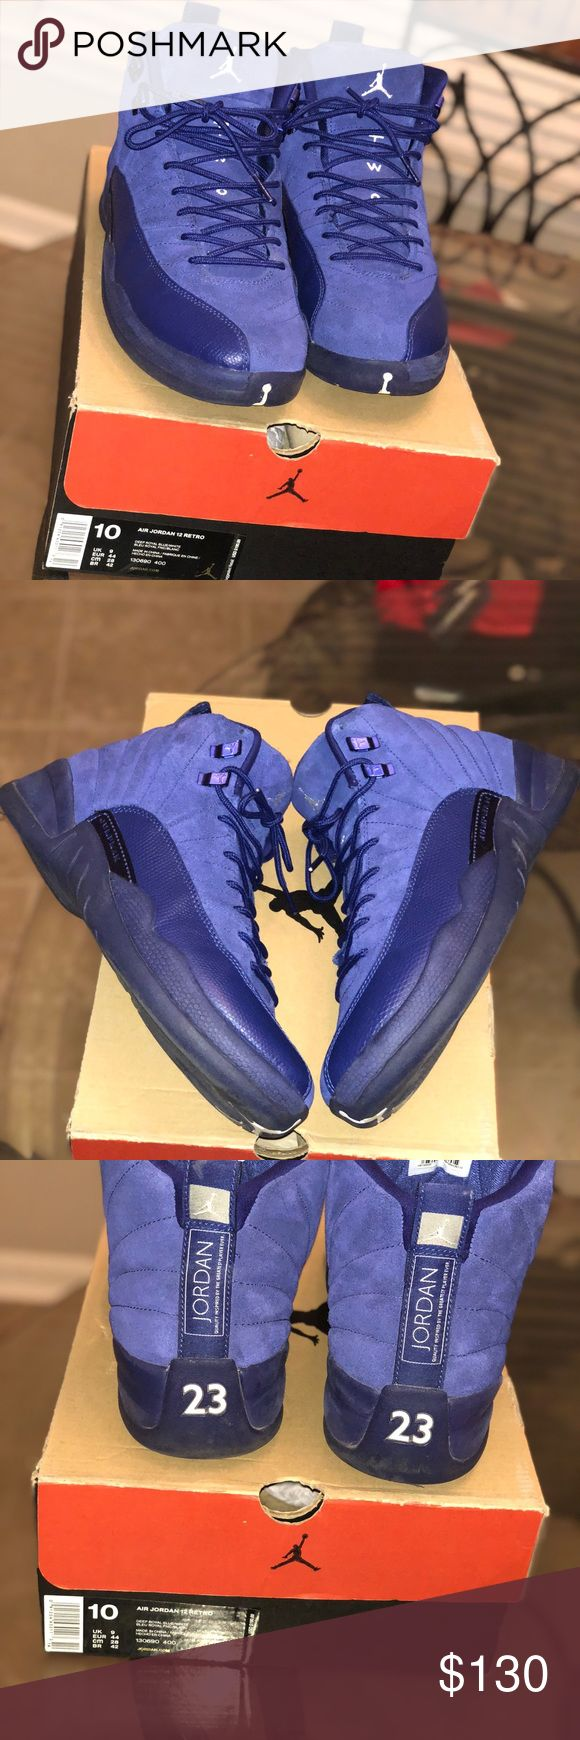 Retro Jordan Royal Blue 12's I've only worn these shoes 2 or 3 times they are like still new ‼️ I'm saling because I have so many pairs of shoes An I still like to buy them so I need a little more closet room Jordan Shoes Sneakers